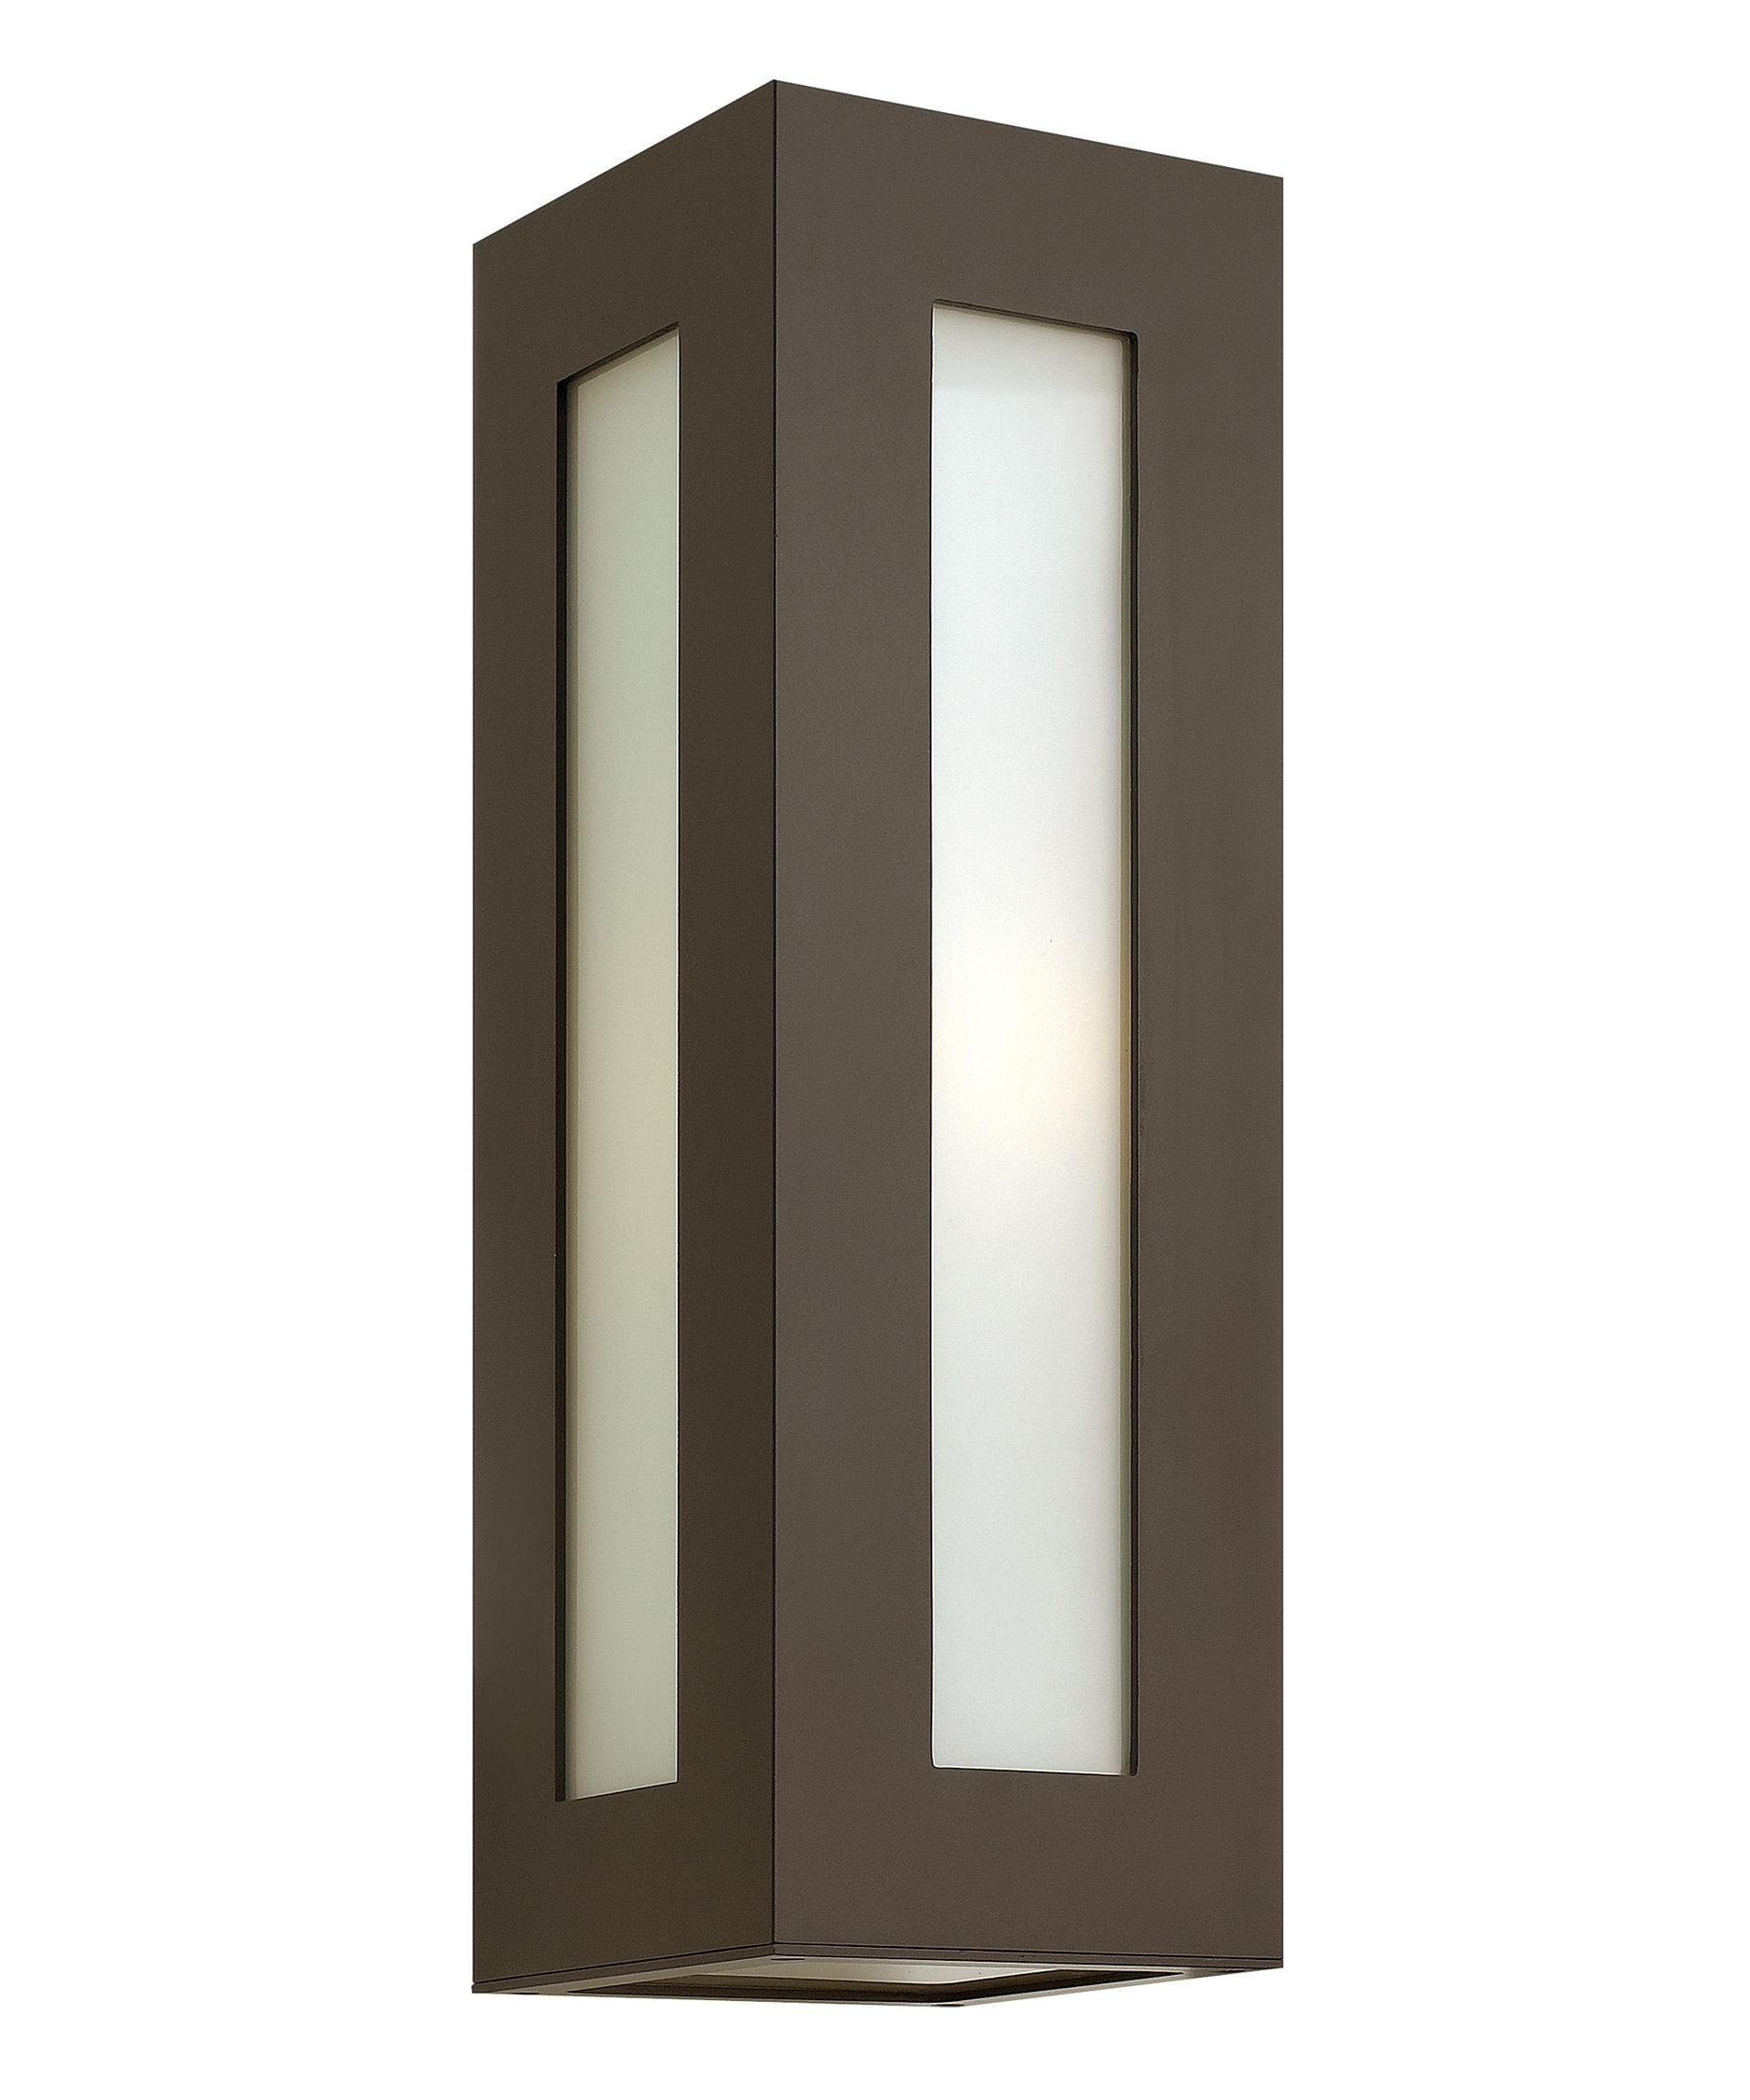 Modern Outdoor Hinkley Lighting Throughout Recent Hinkley Lighting 2194 Dorian 6 Inch Wide 1 Light Outdoor Wall Light (View 12 of 20)